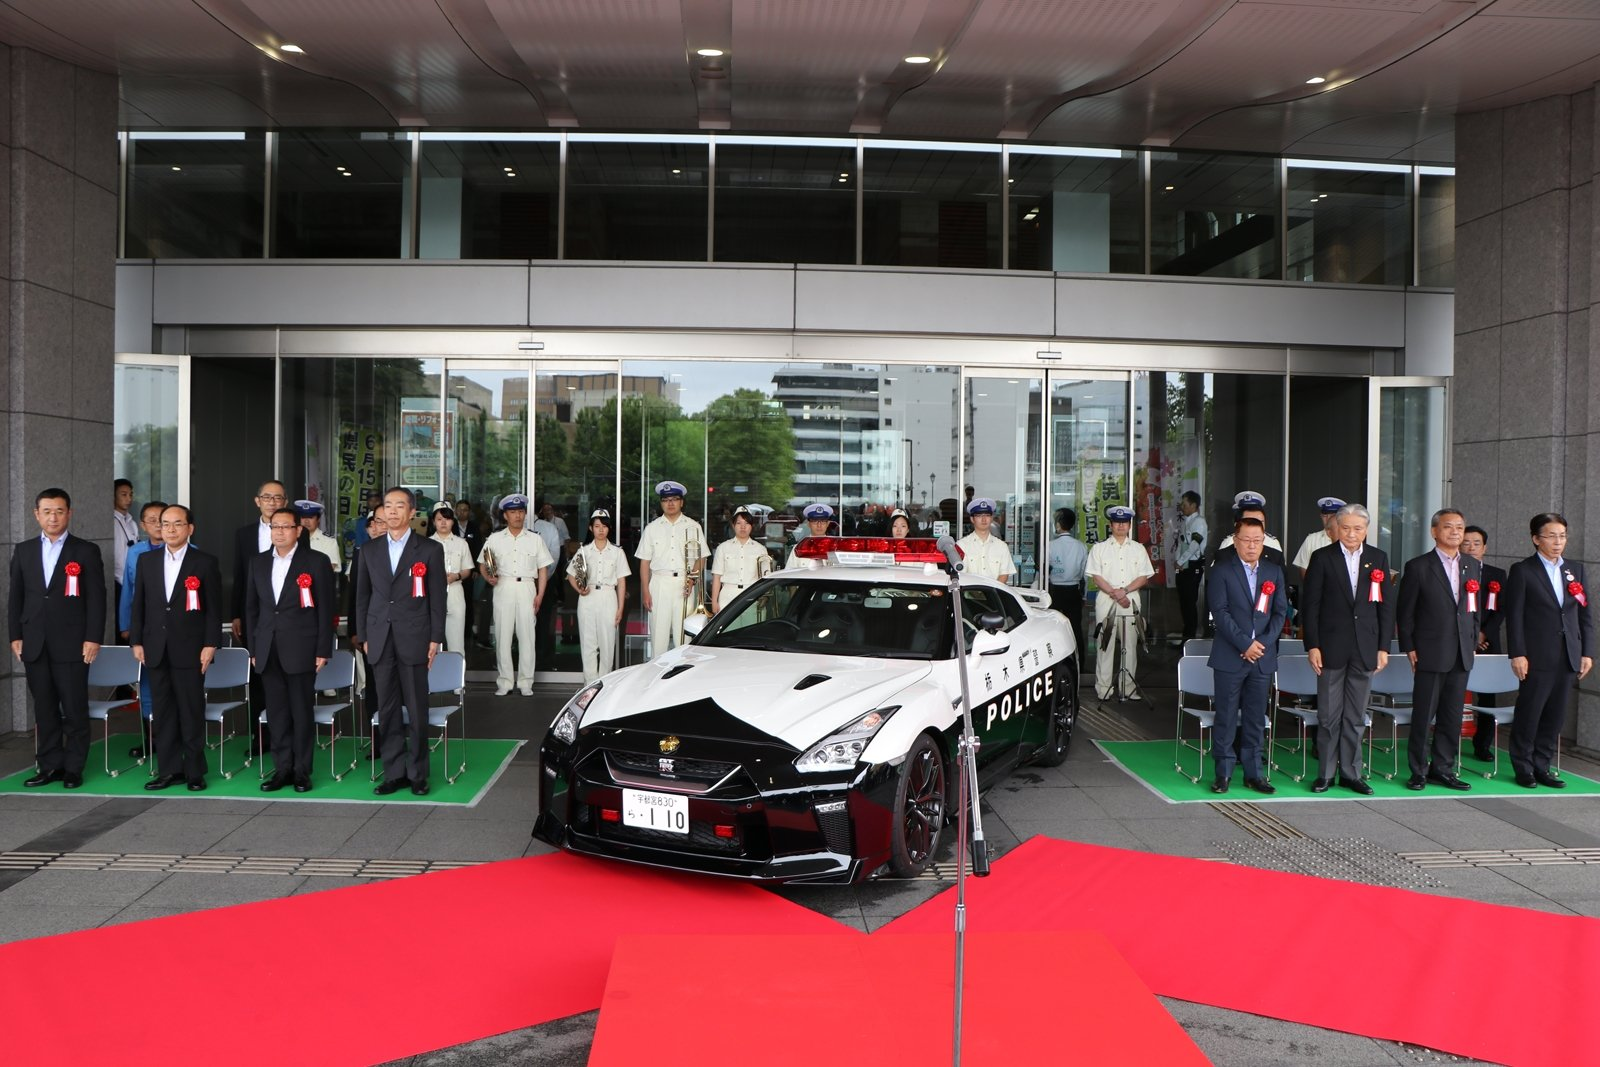 Japan Just Put An R35 Nissan Gtr Police Car Into Service Autoguide